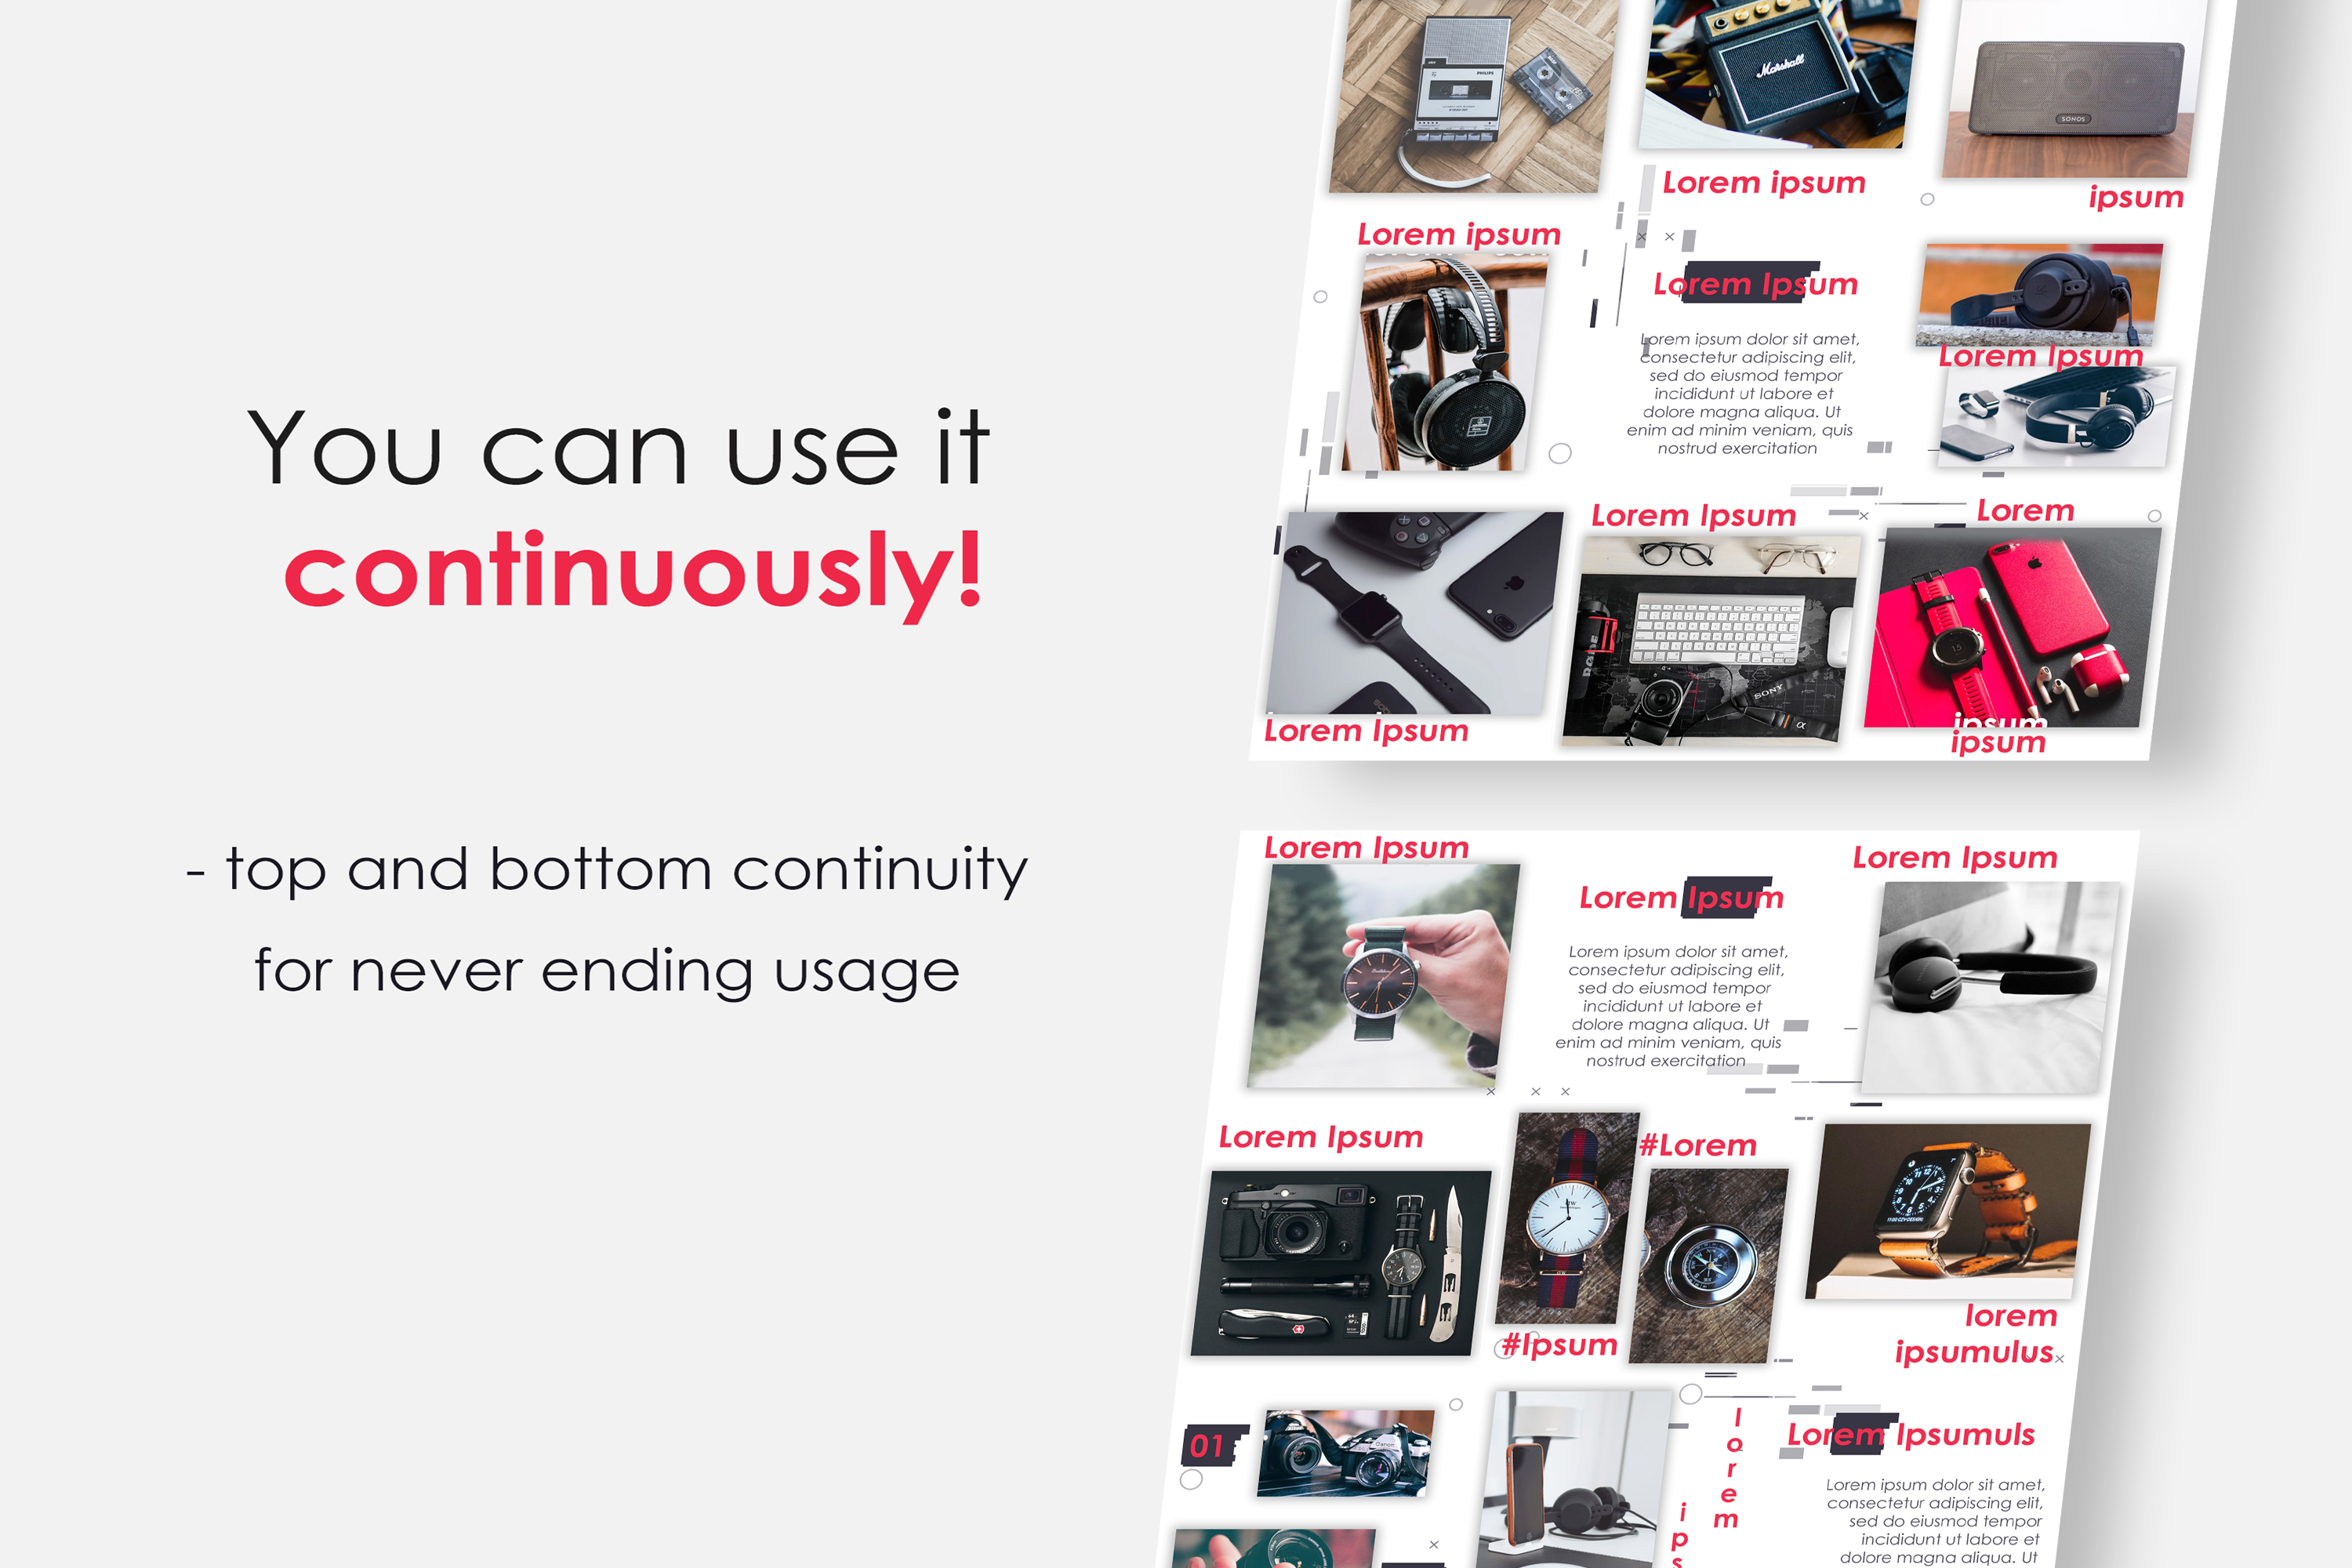 Instagram Puzzle Feed Template for Dropshipping #2 example image 2